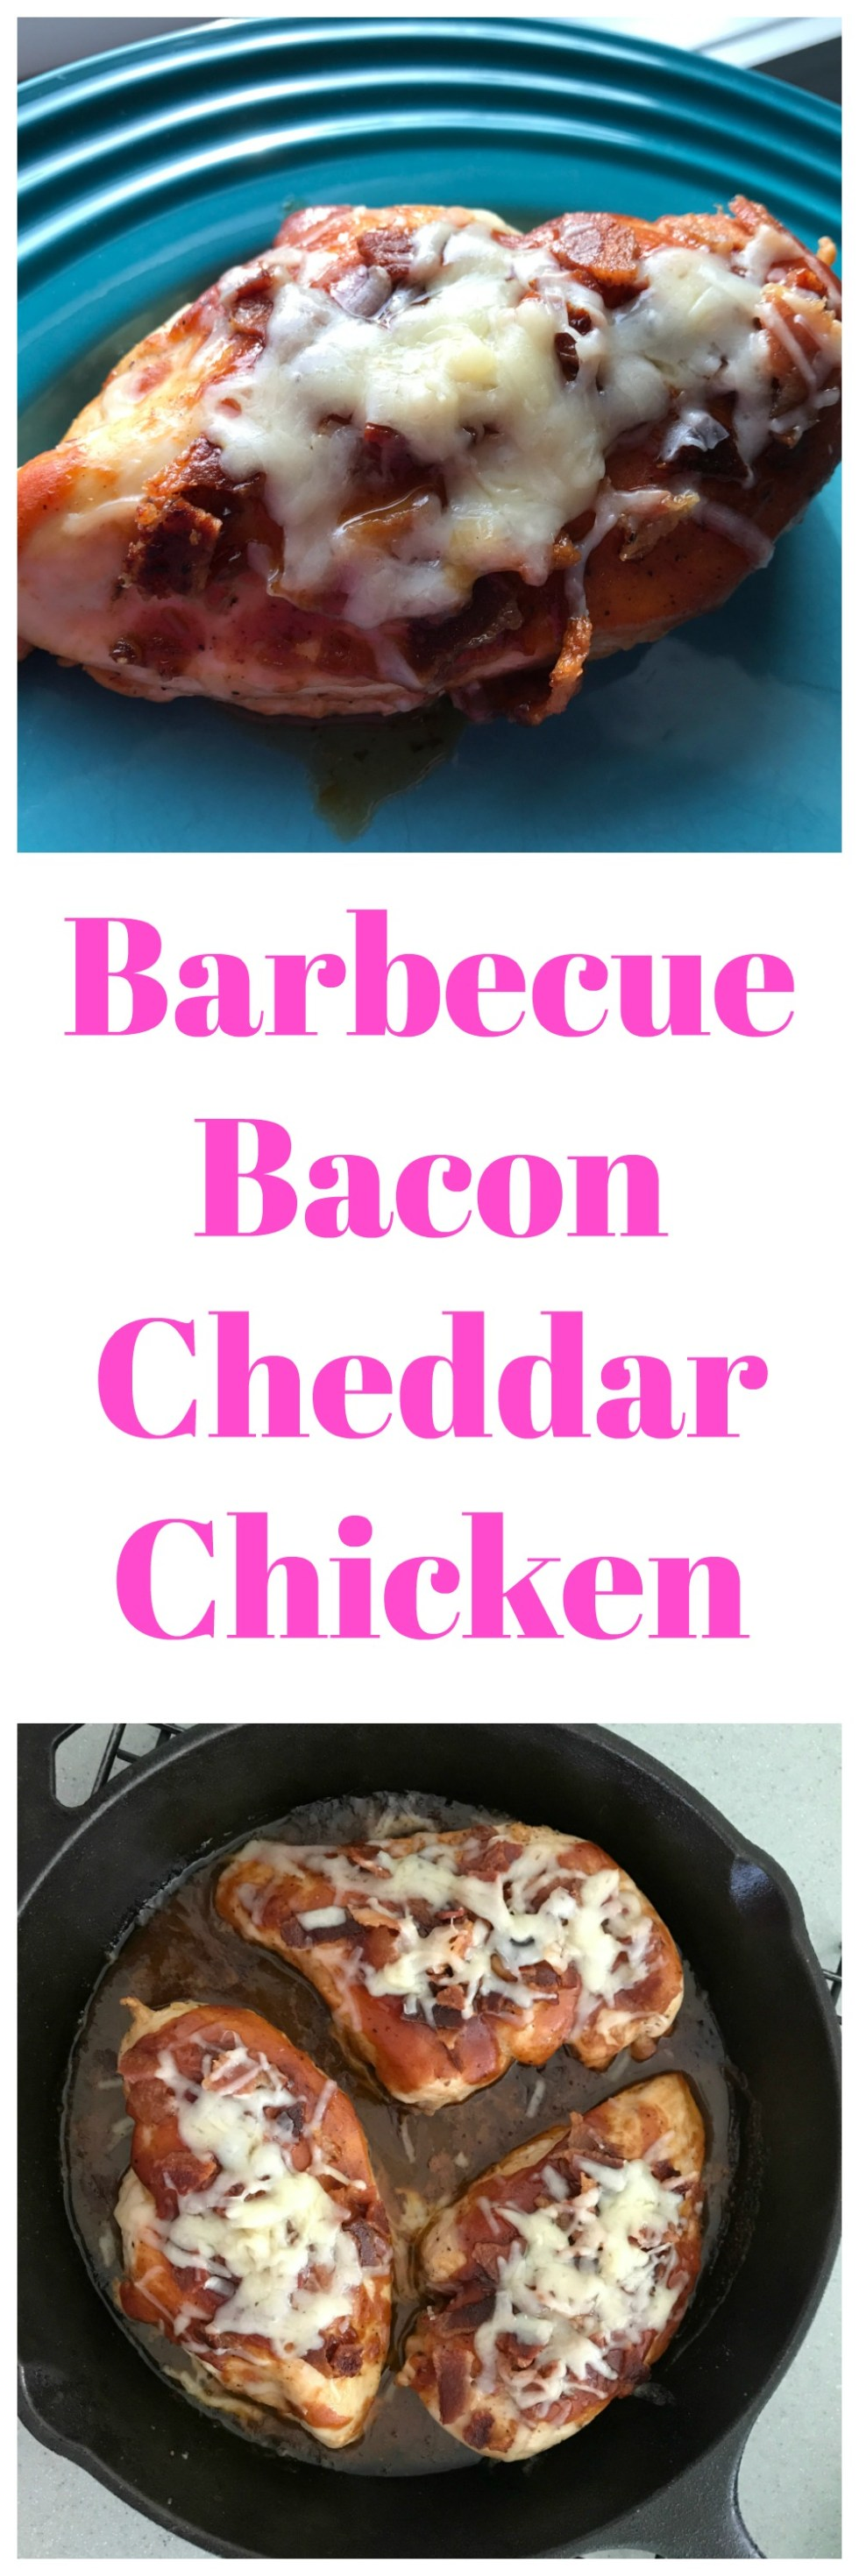 Impress friends with barbecue bacon cheddar chicken when entertaining.